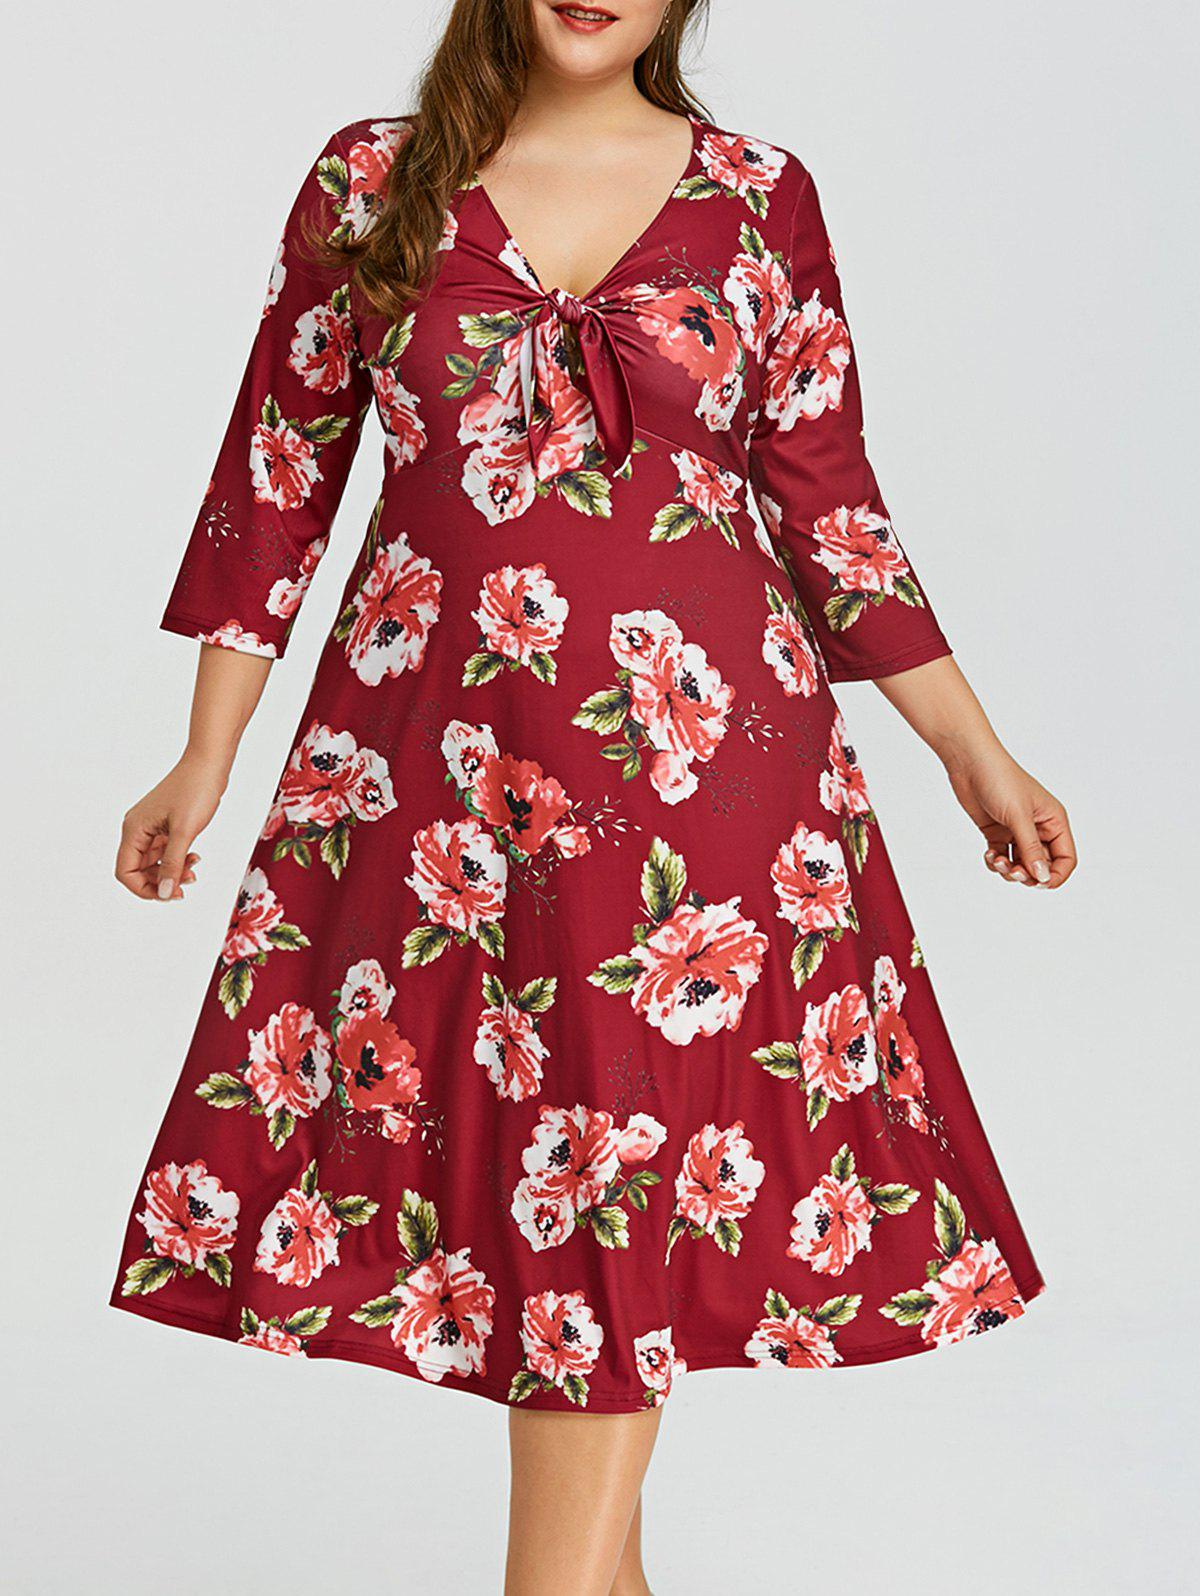 Plus Size Floral Empire Waist Hawaiian Dress - WINE RED 2XL